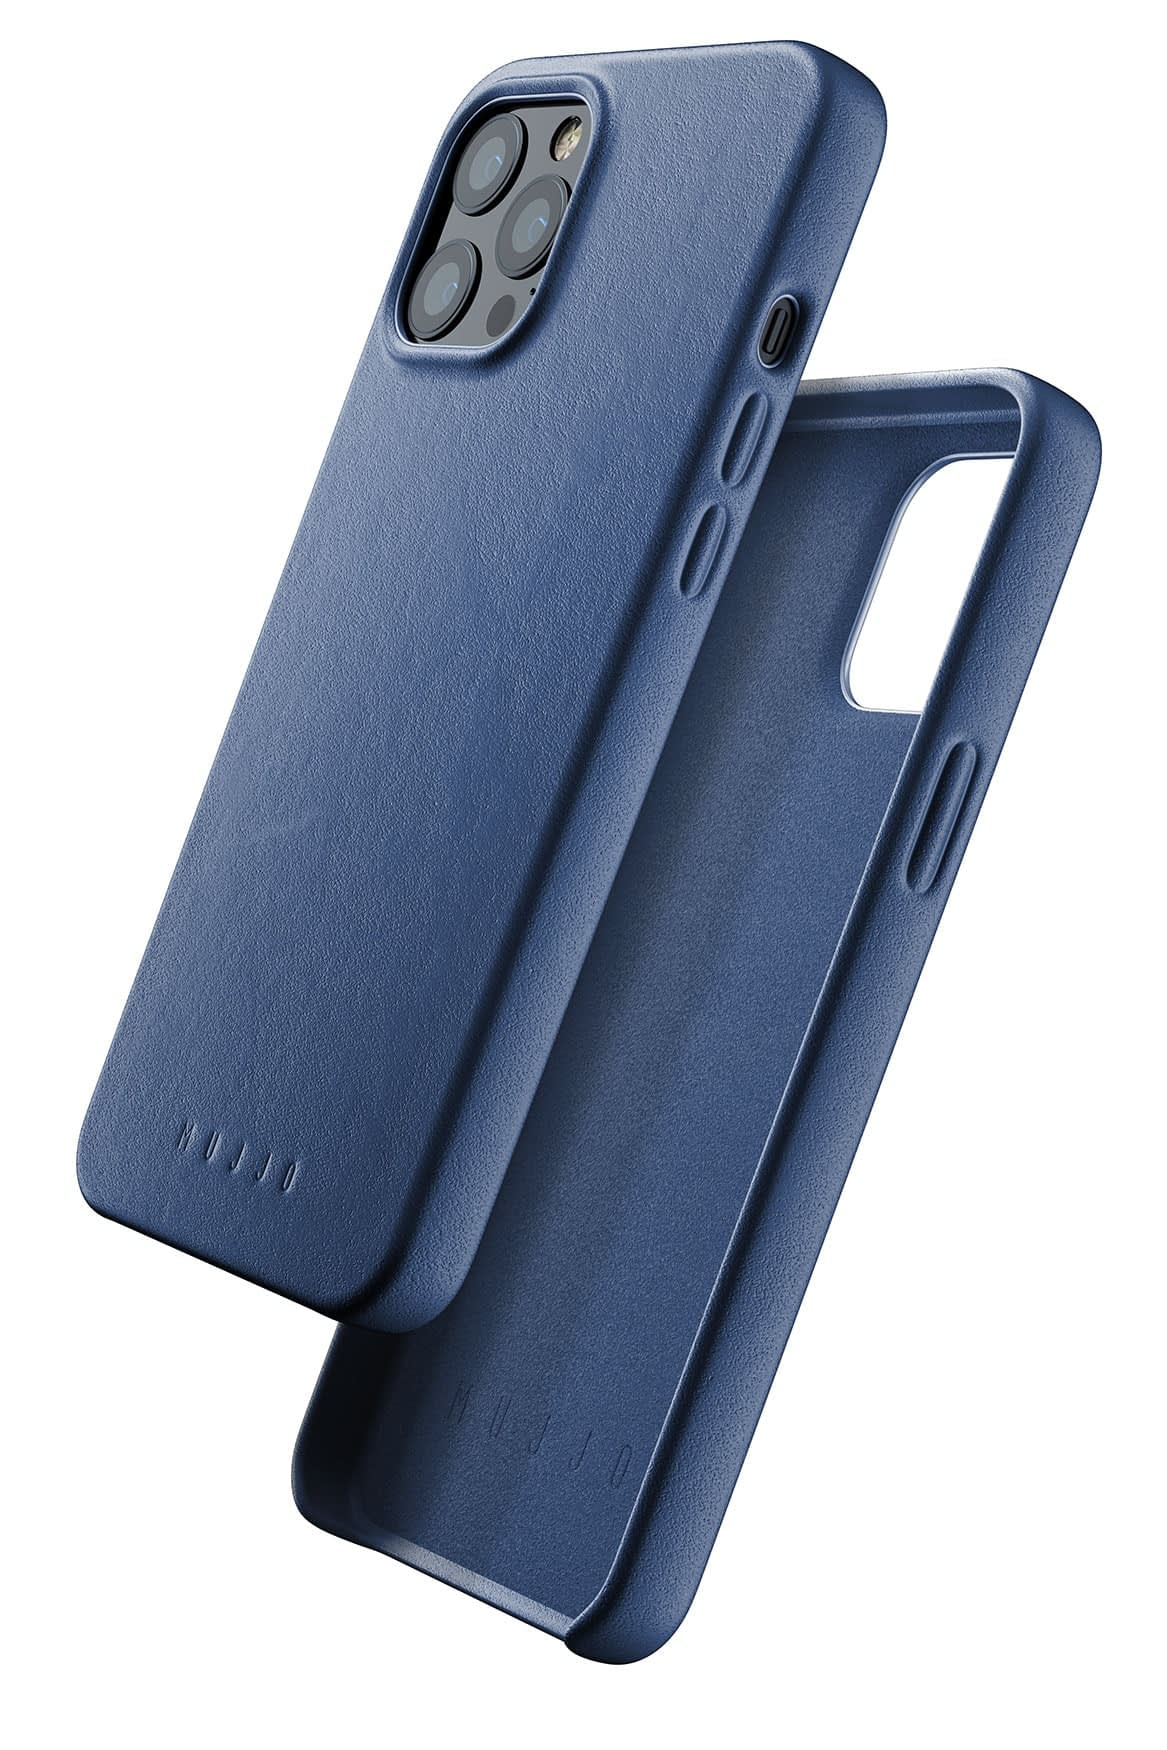 Full Leather Case for iPhone 12 Pro Max Monaco Blue 01